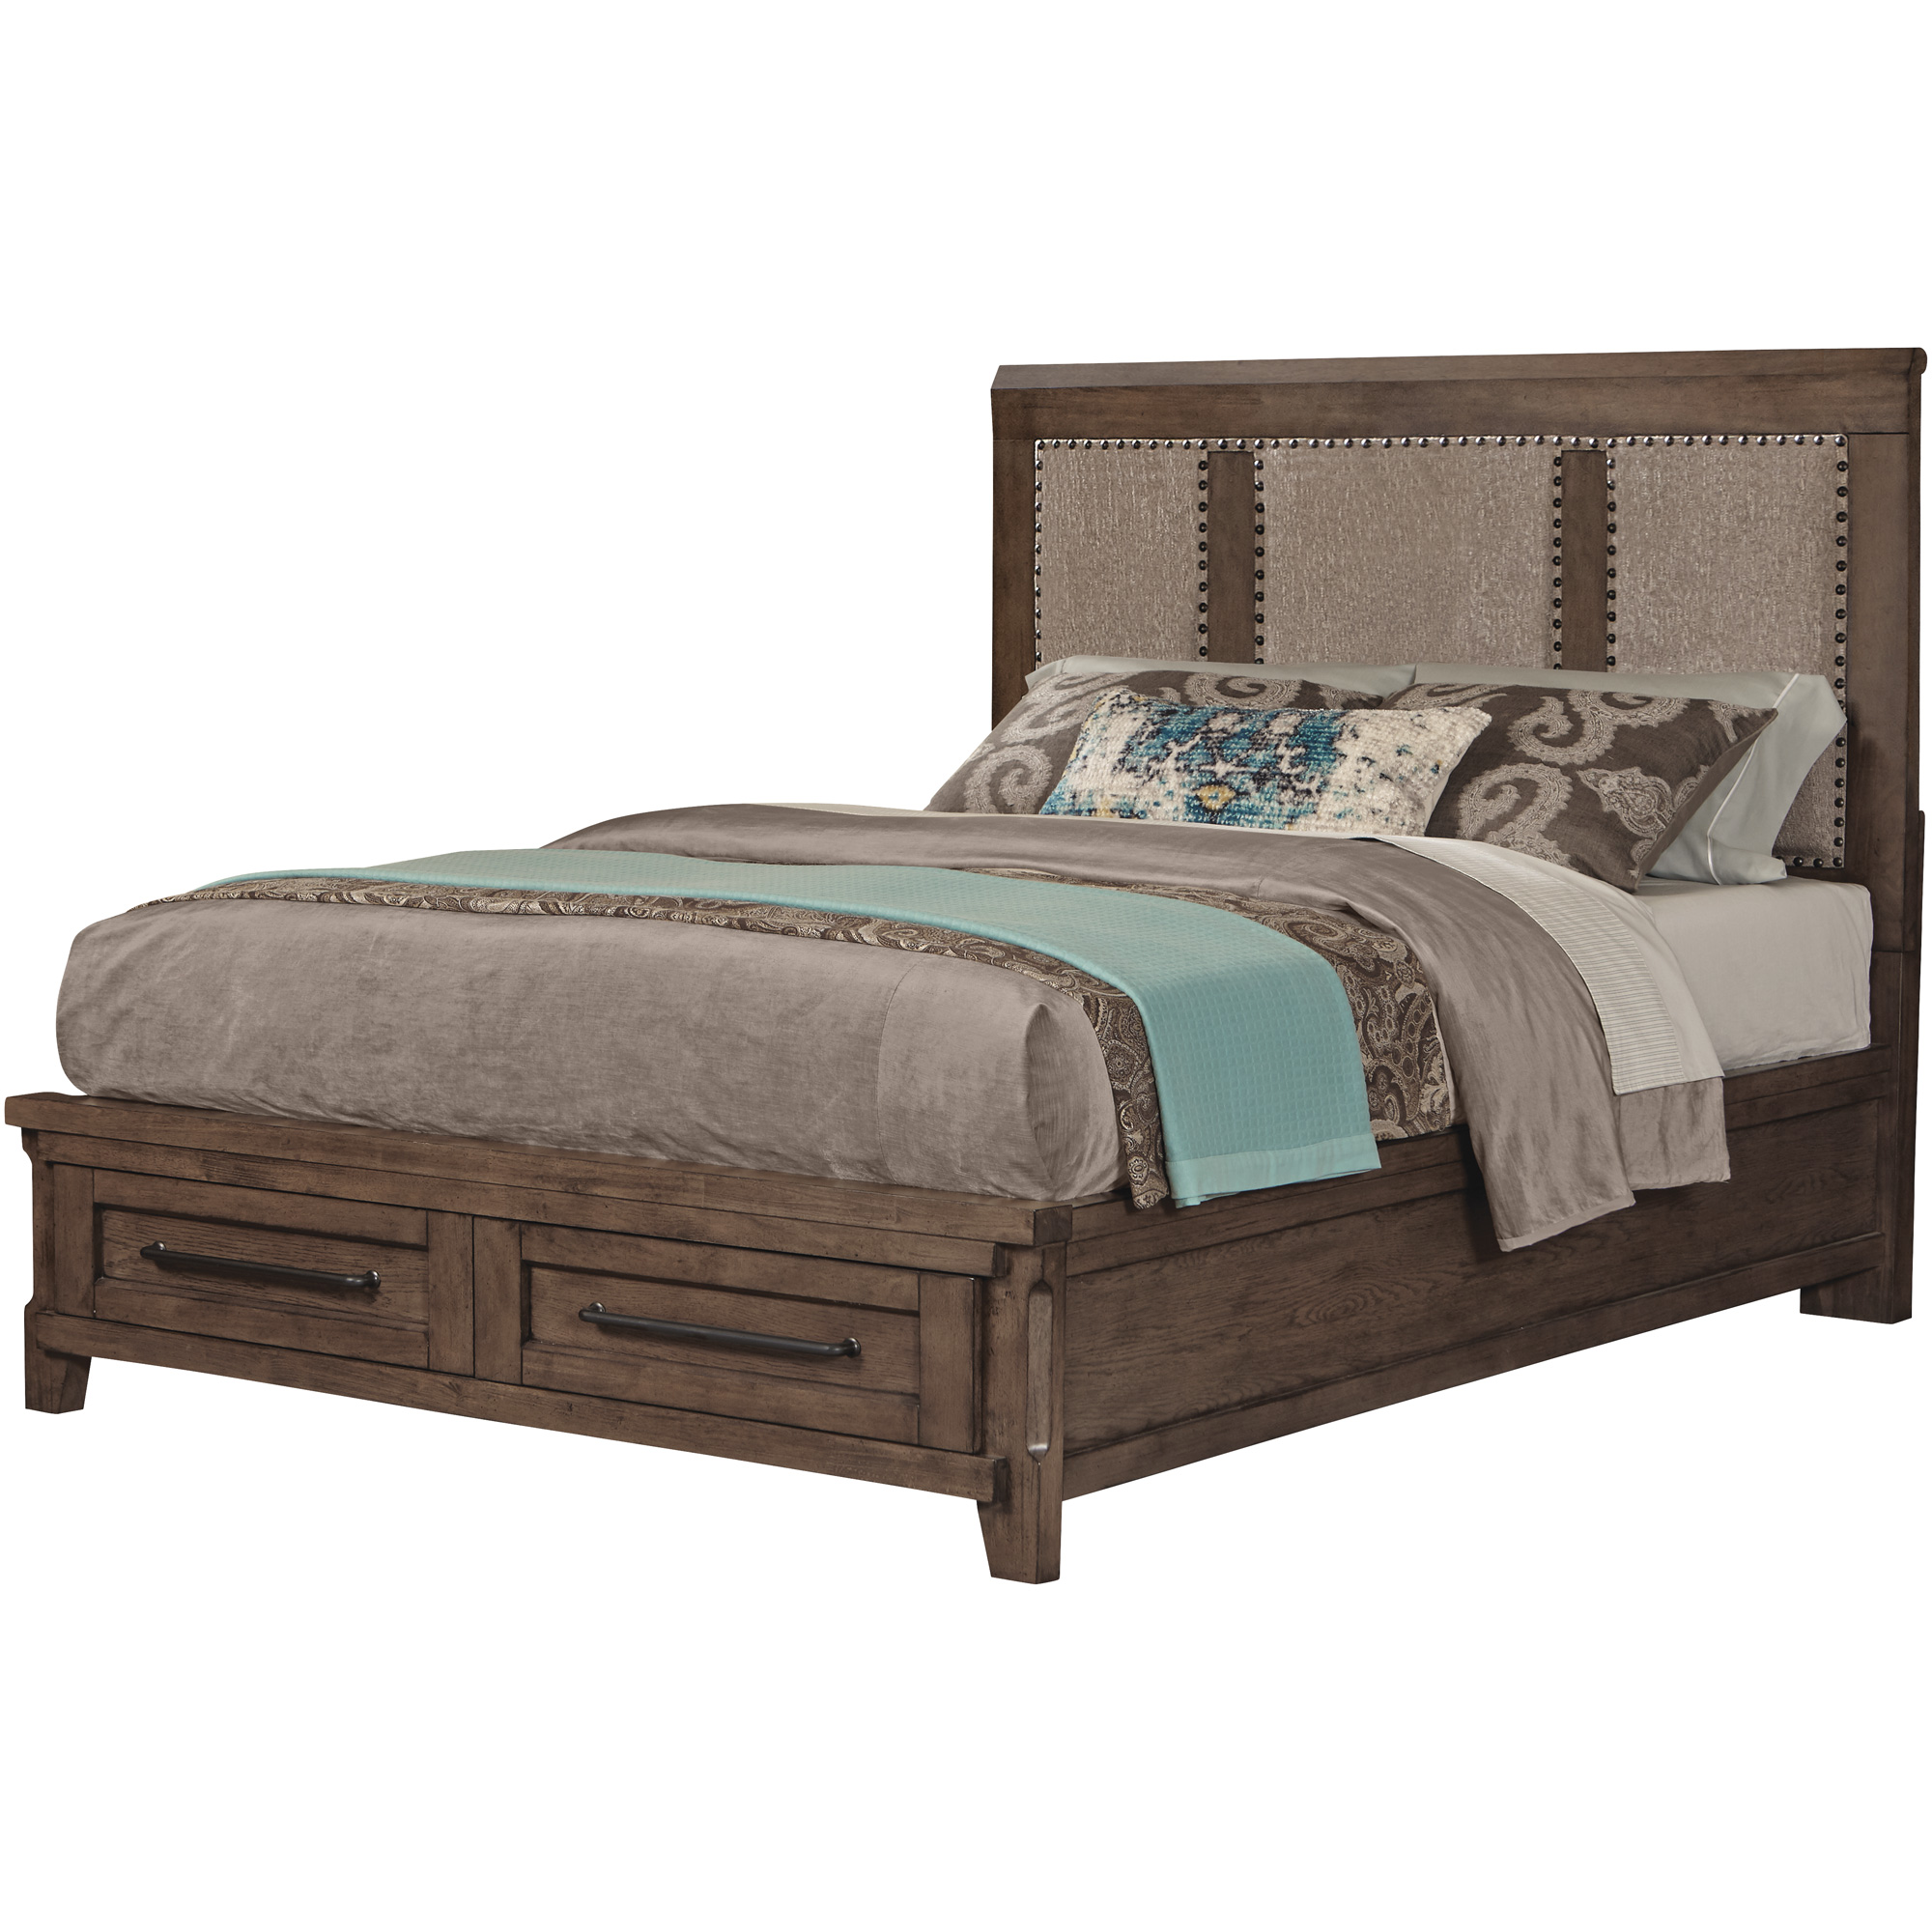 Davis Direct | Patches Gray Brown King Upholstered Storage Bed